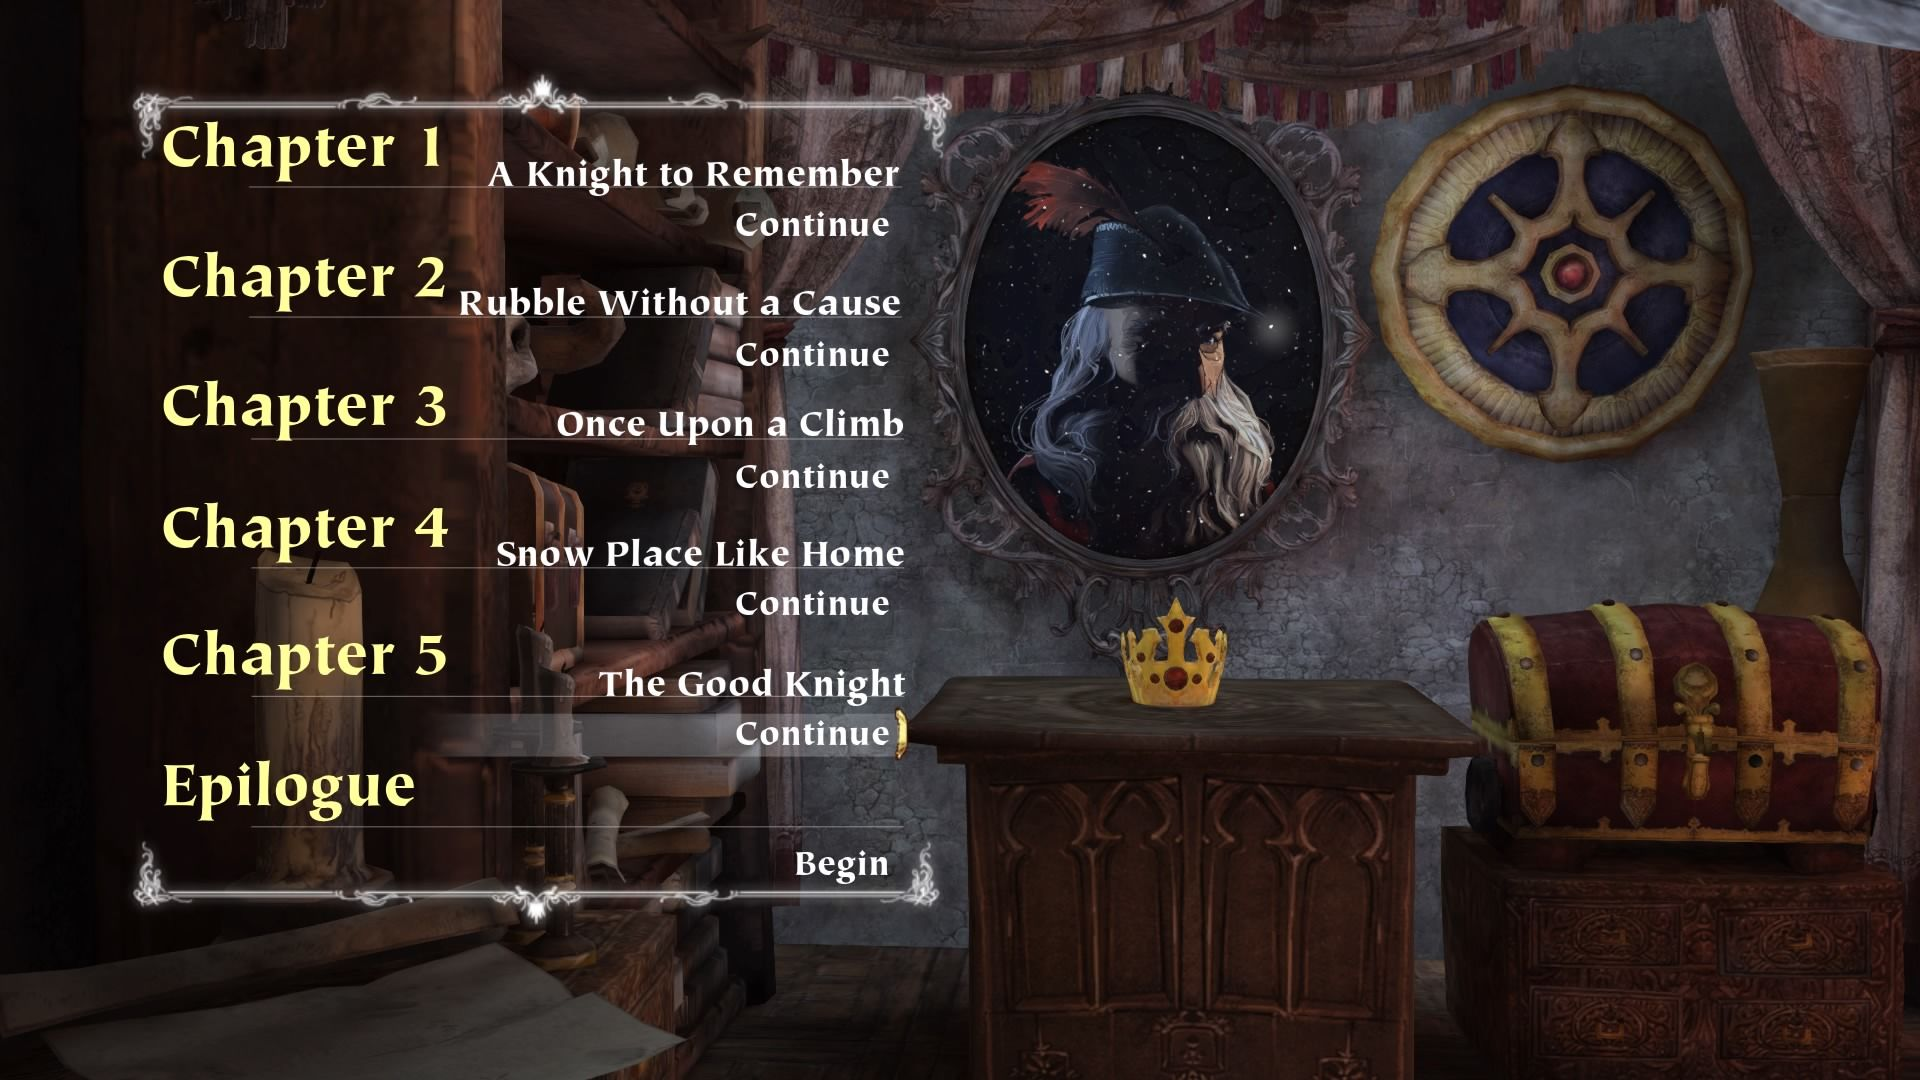 King's Quest: Chapter V - The Good Knight PlayStation 4 Chapter 5 select screen